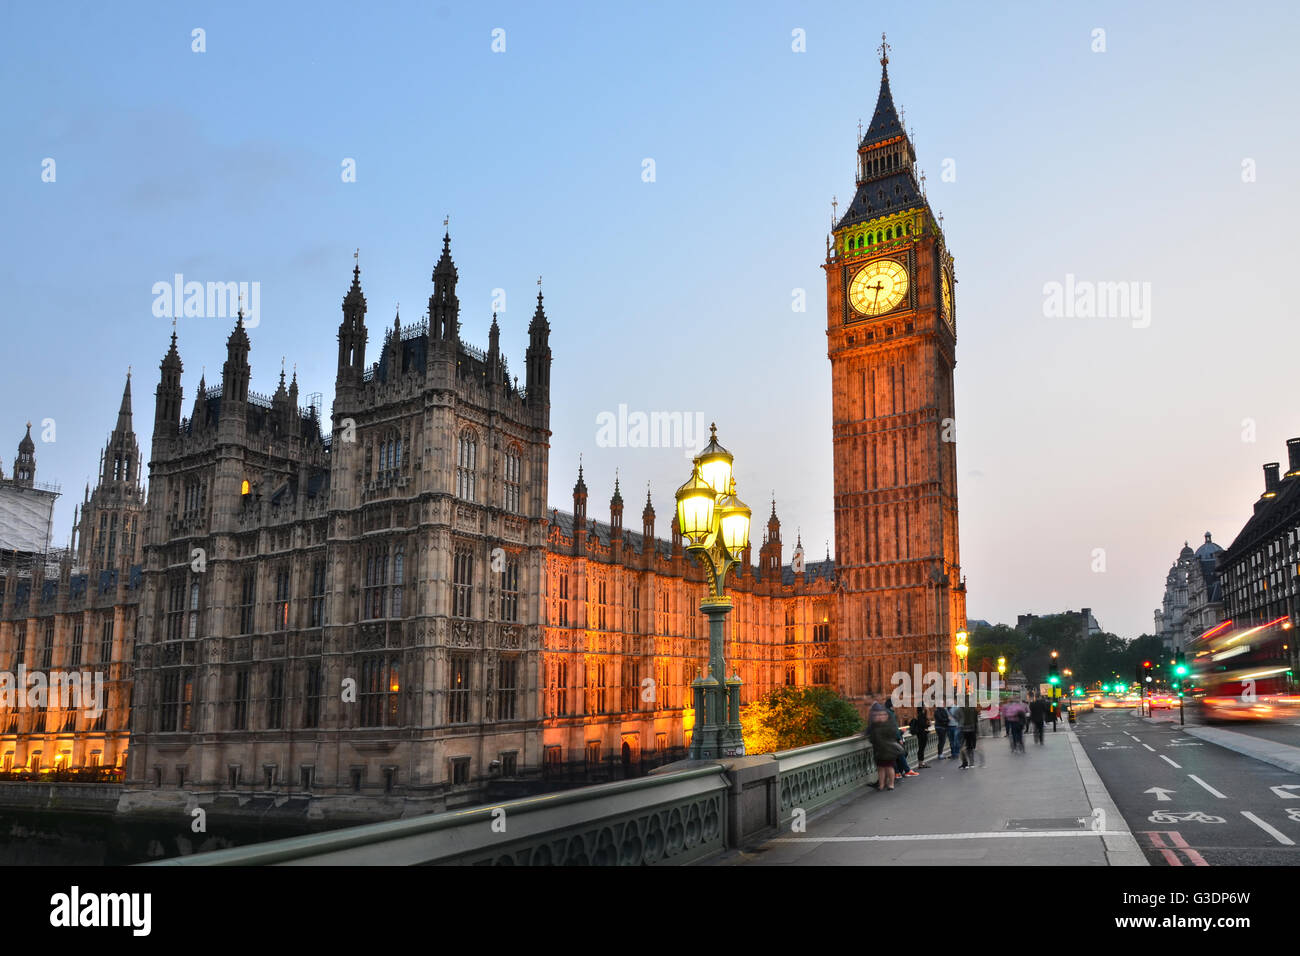 Big Ben, London, England, Regno Unito Immagini Stock